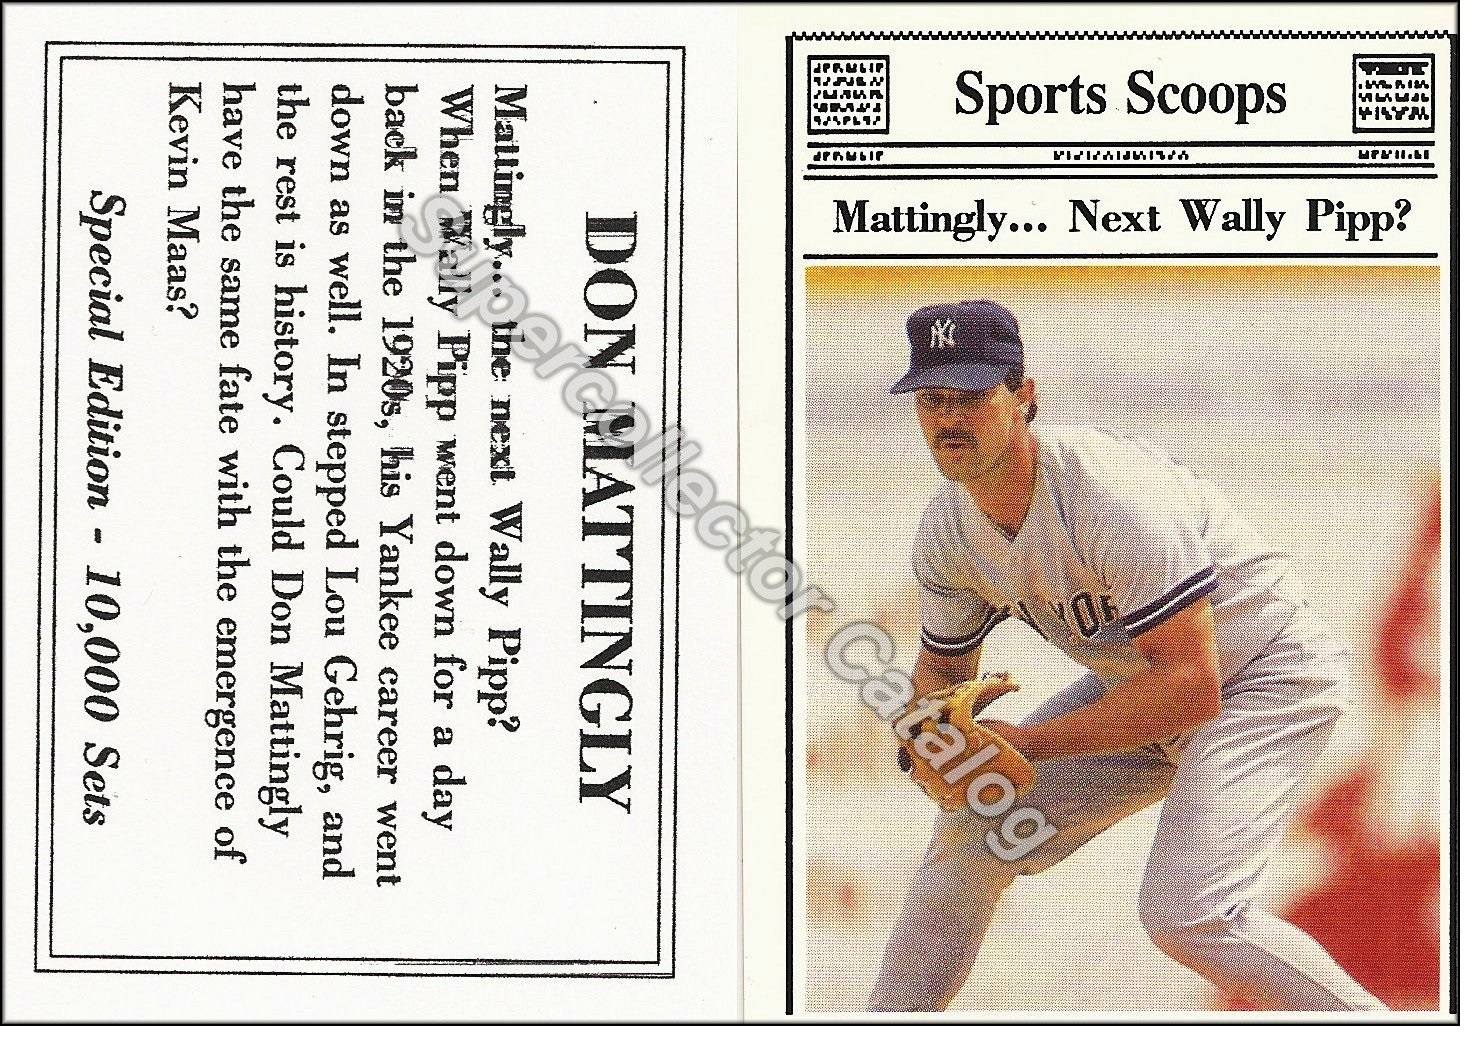 1990 Sports Scoops